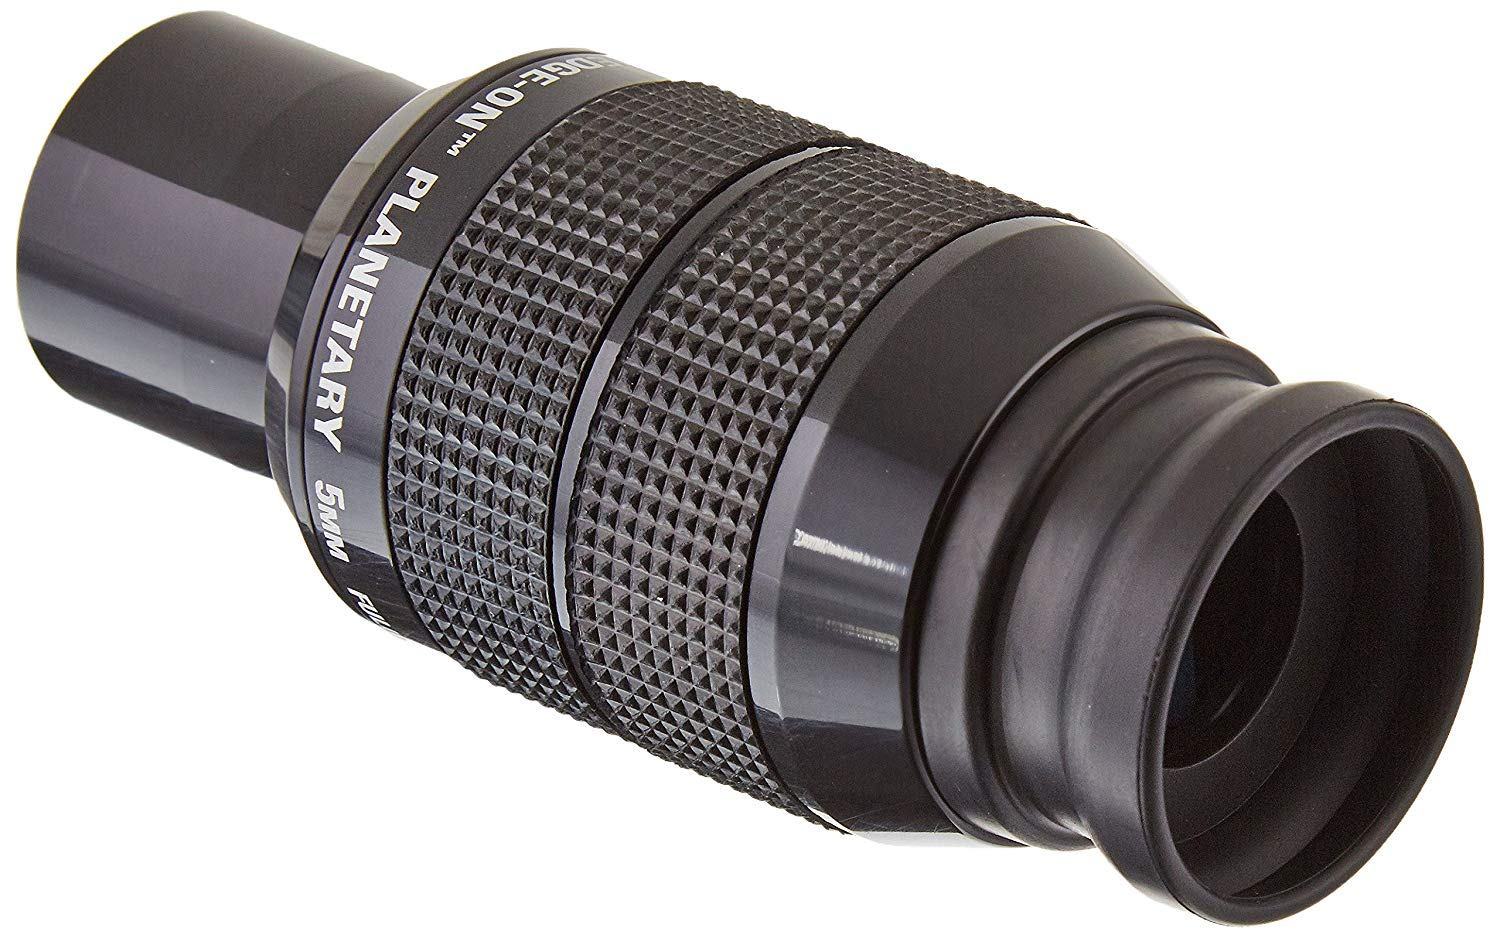 Best Telescope Eyepieces For Viewing Planets 2020